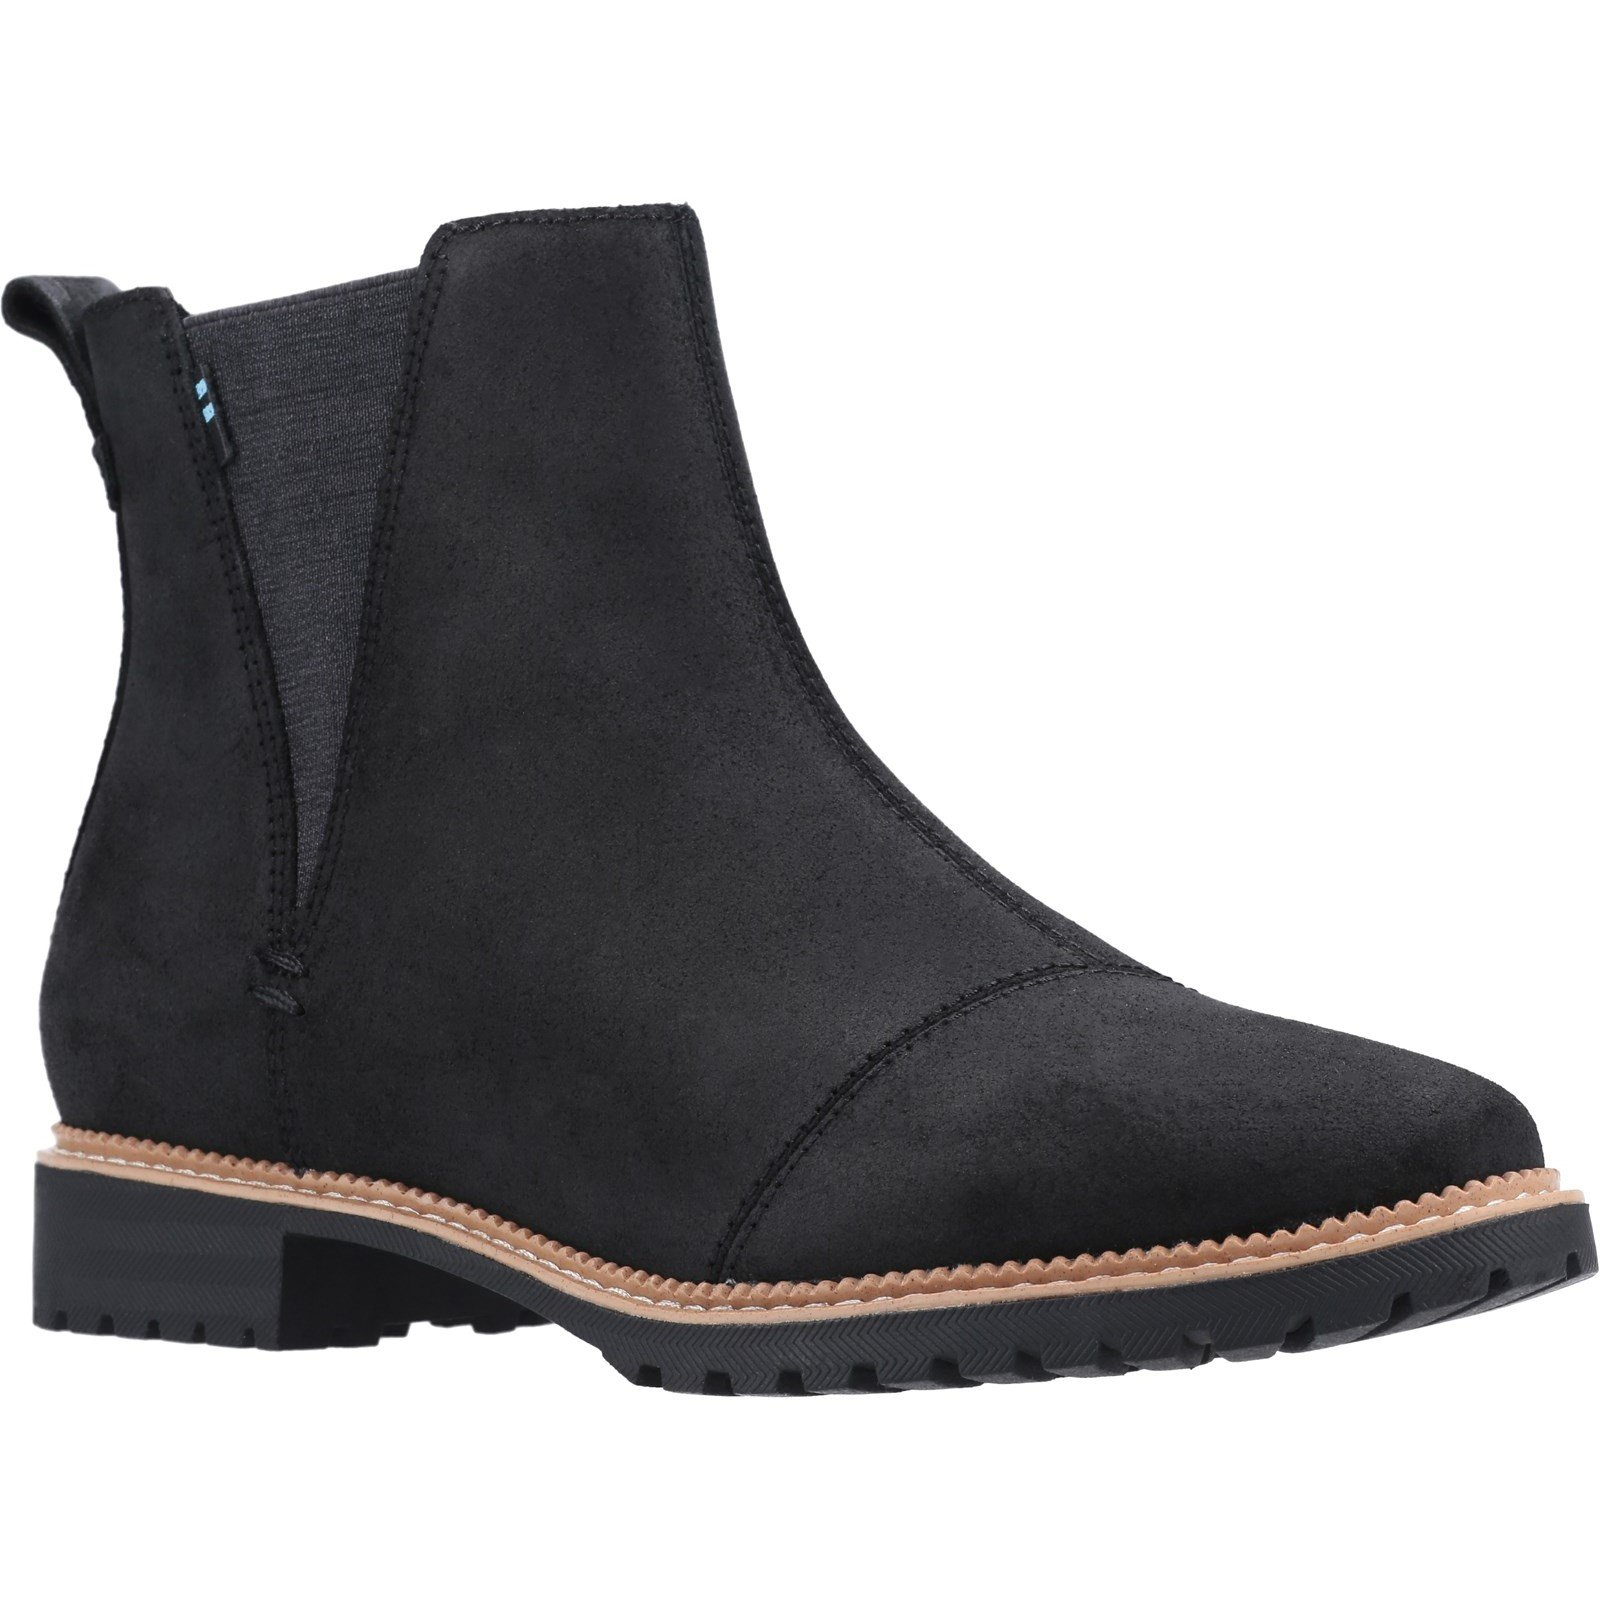 TOMS Women's Cleo Boot Multicolor 31596 - Water Resistant Black Leather 8